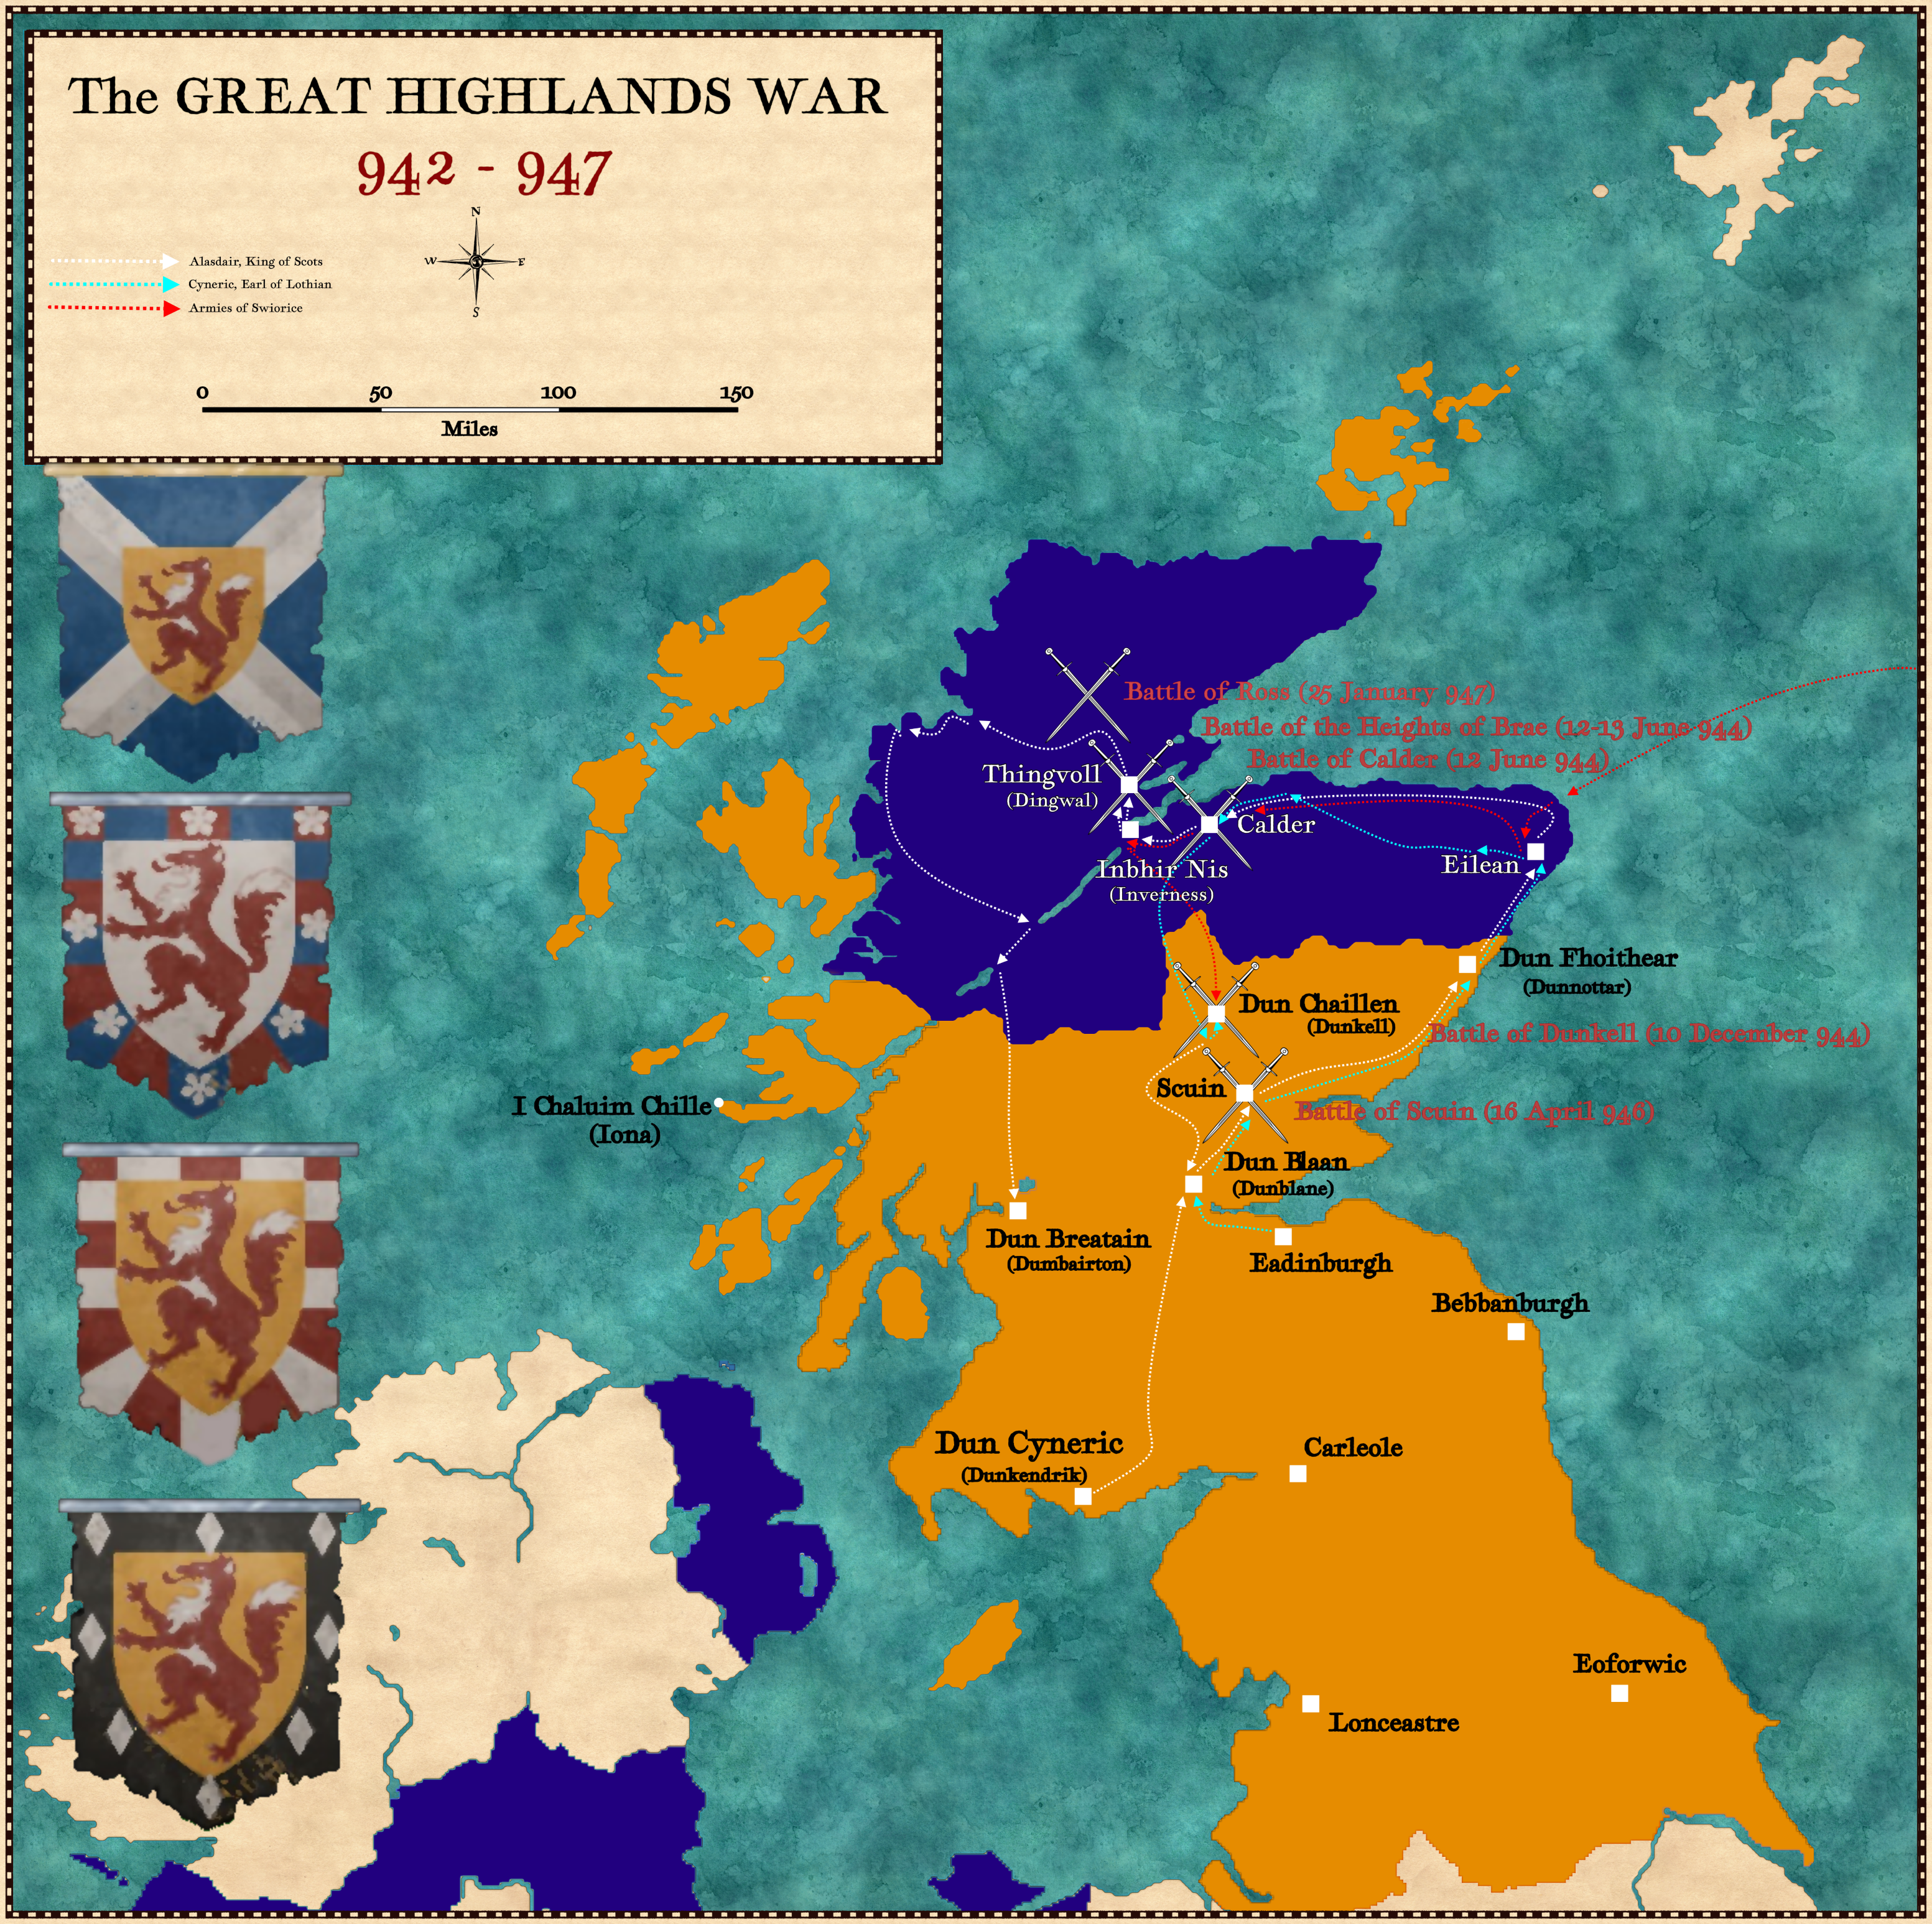 Great Highland War FINAL reduced size.png